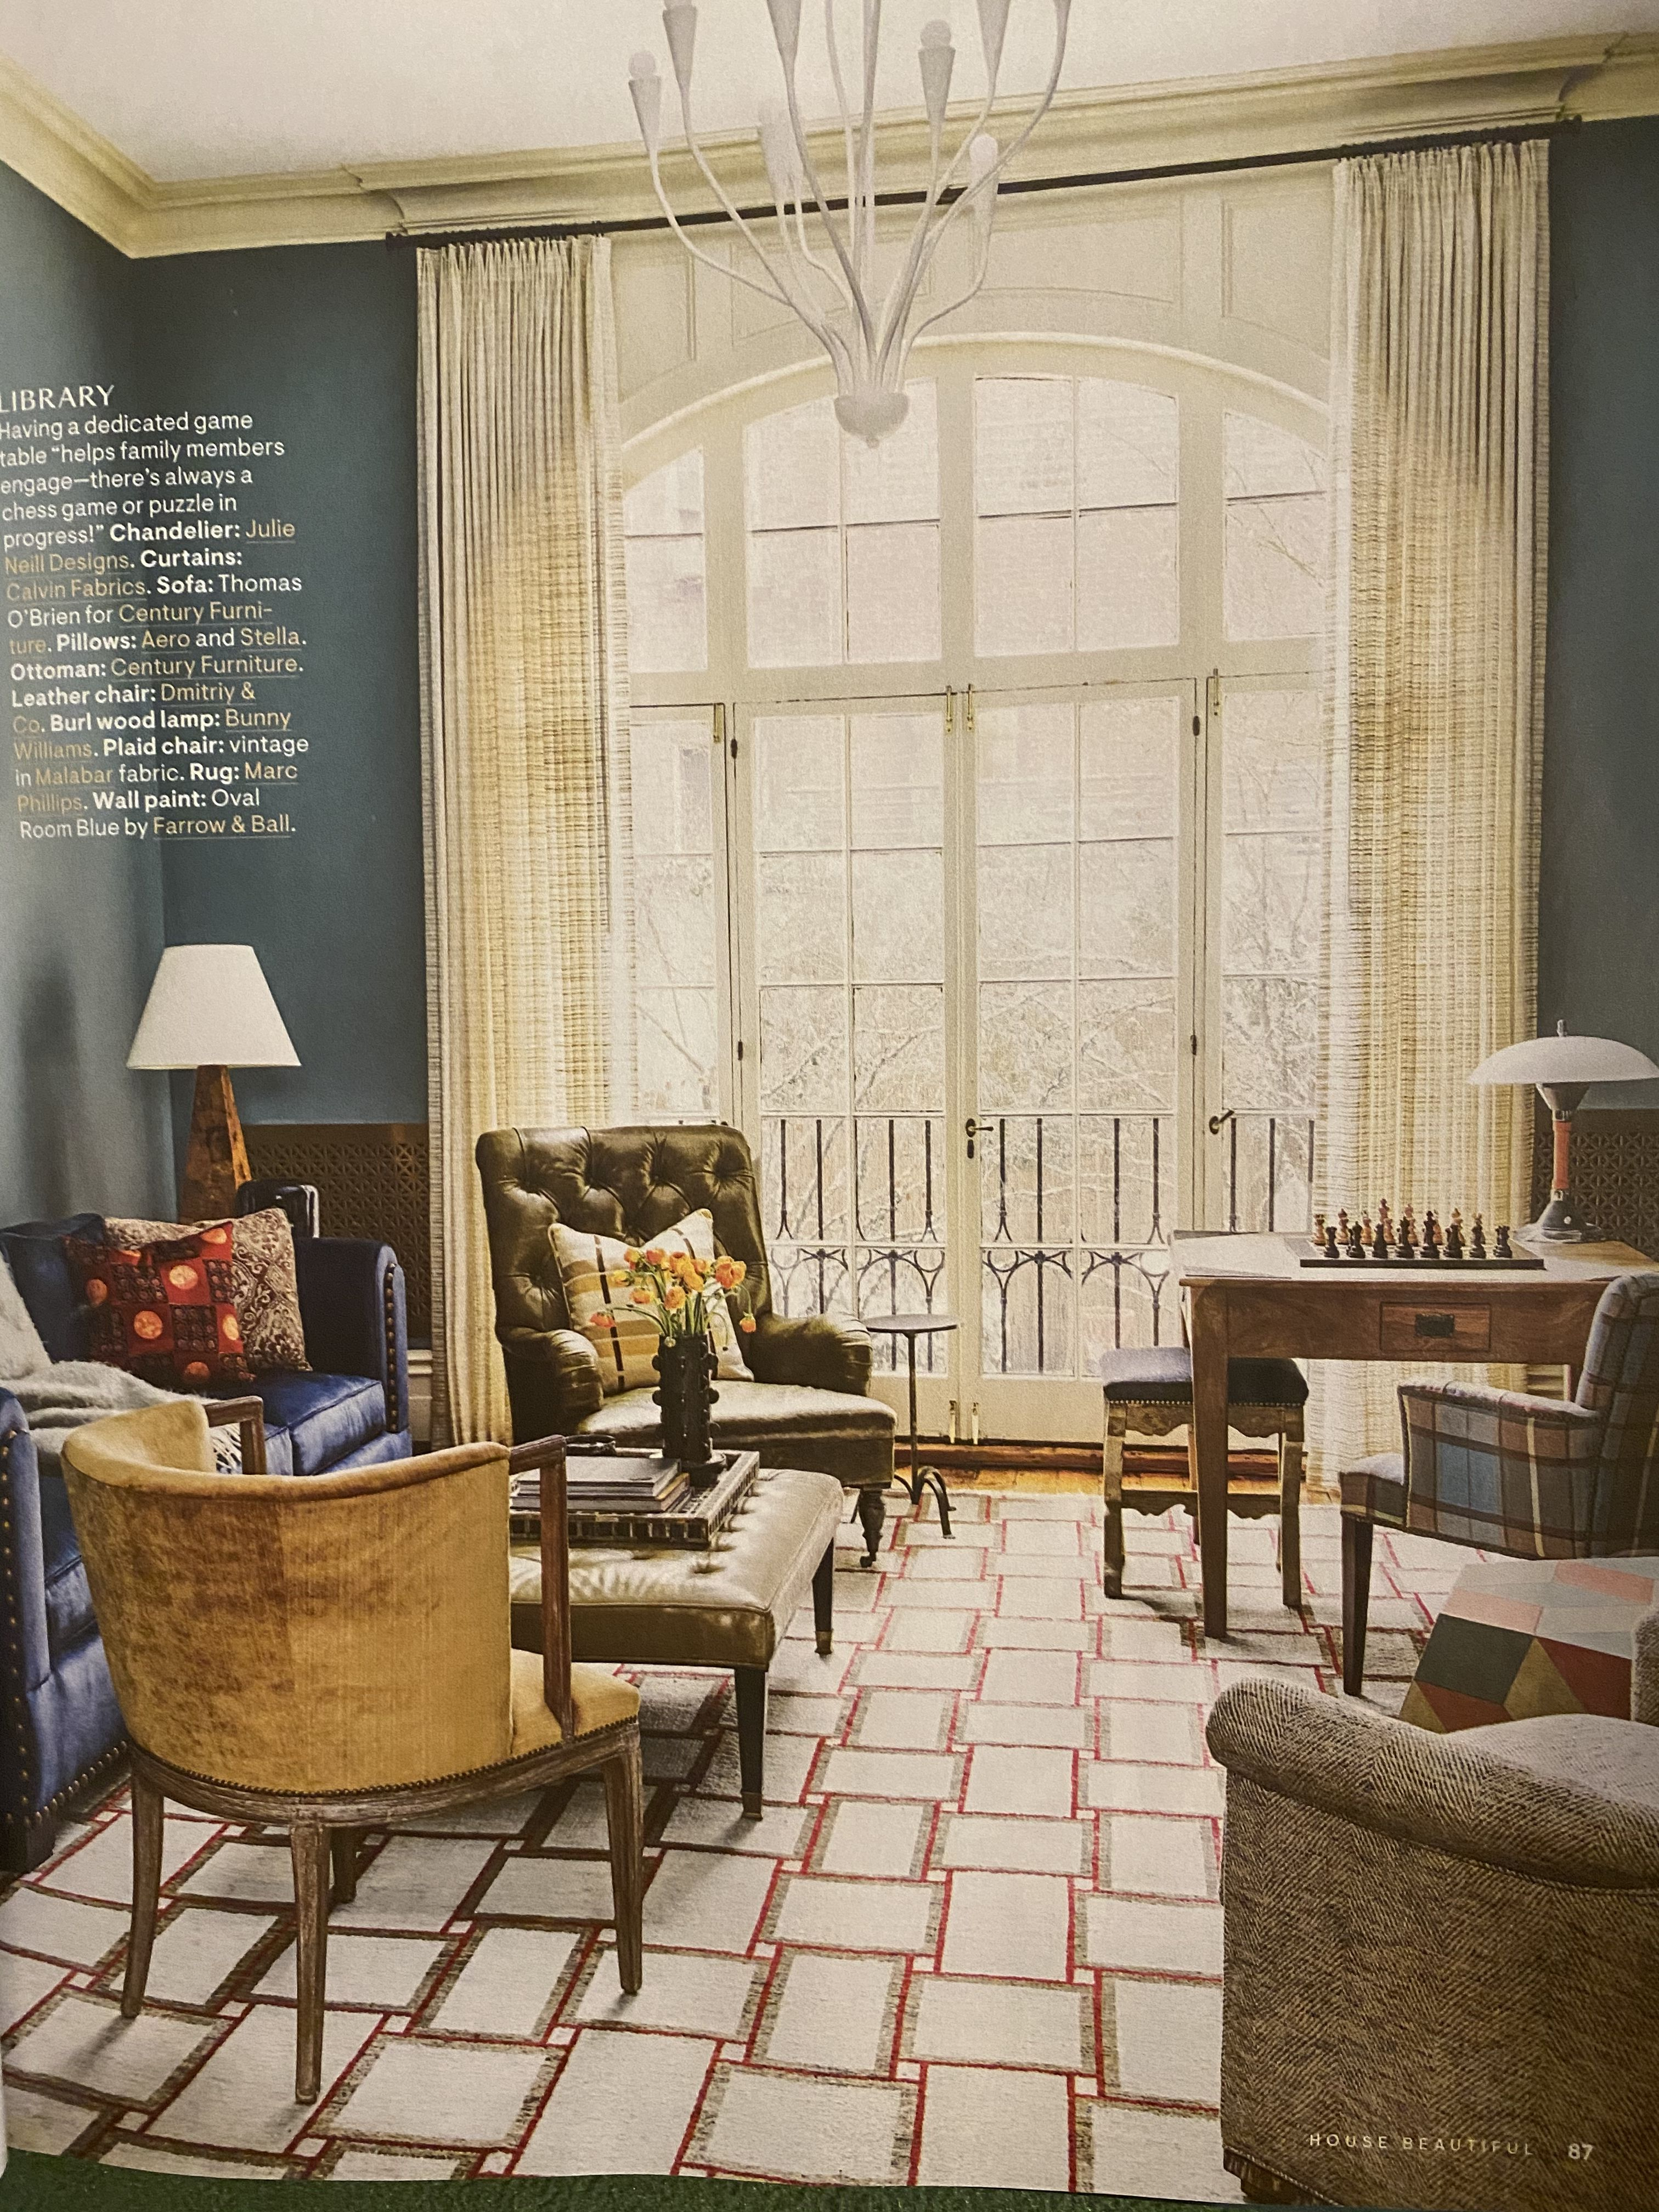 April/May 13 house beautiful in 13  Oval room blue, Home